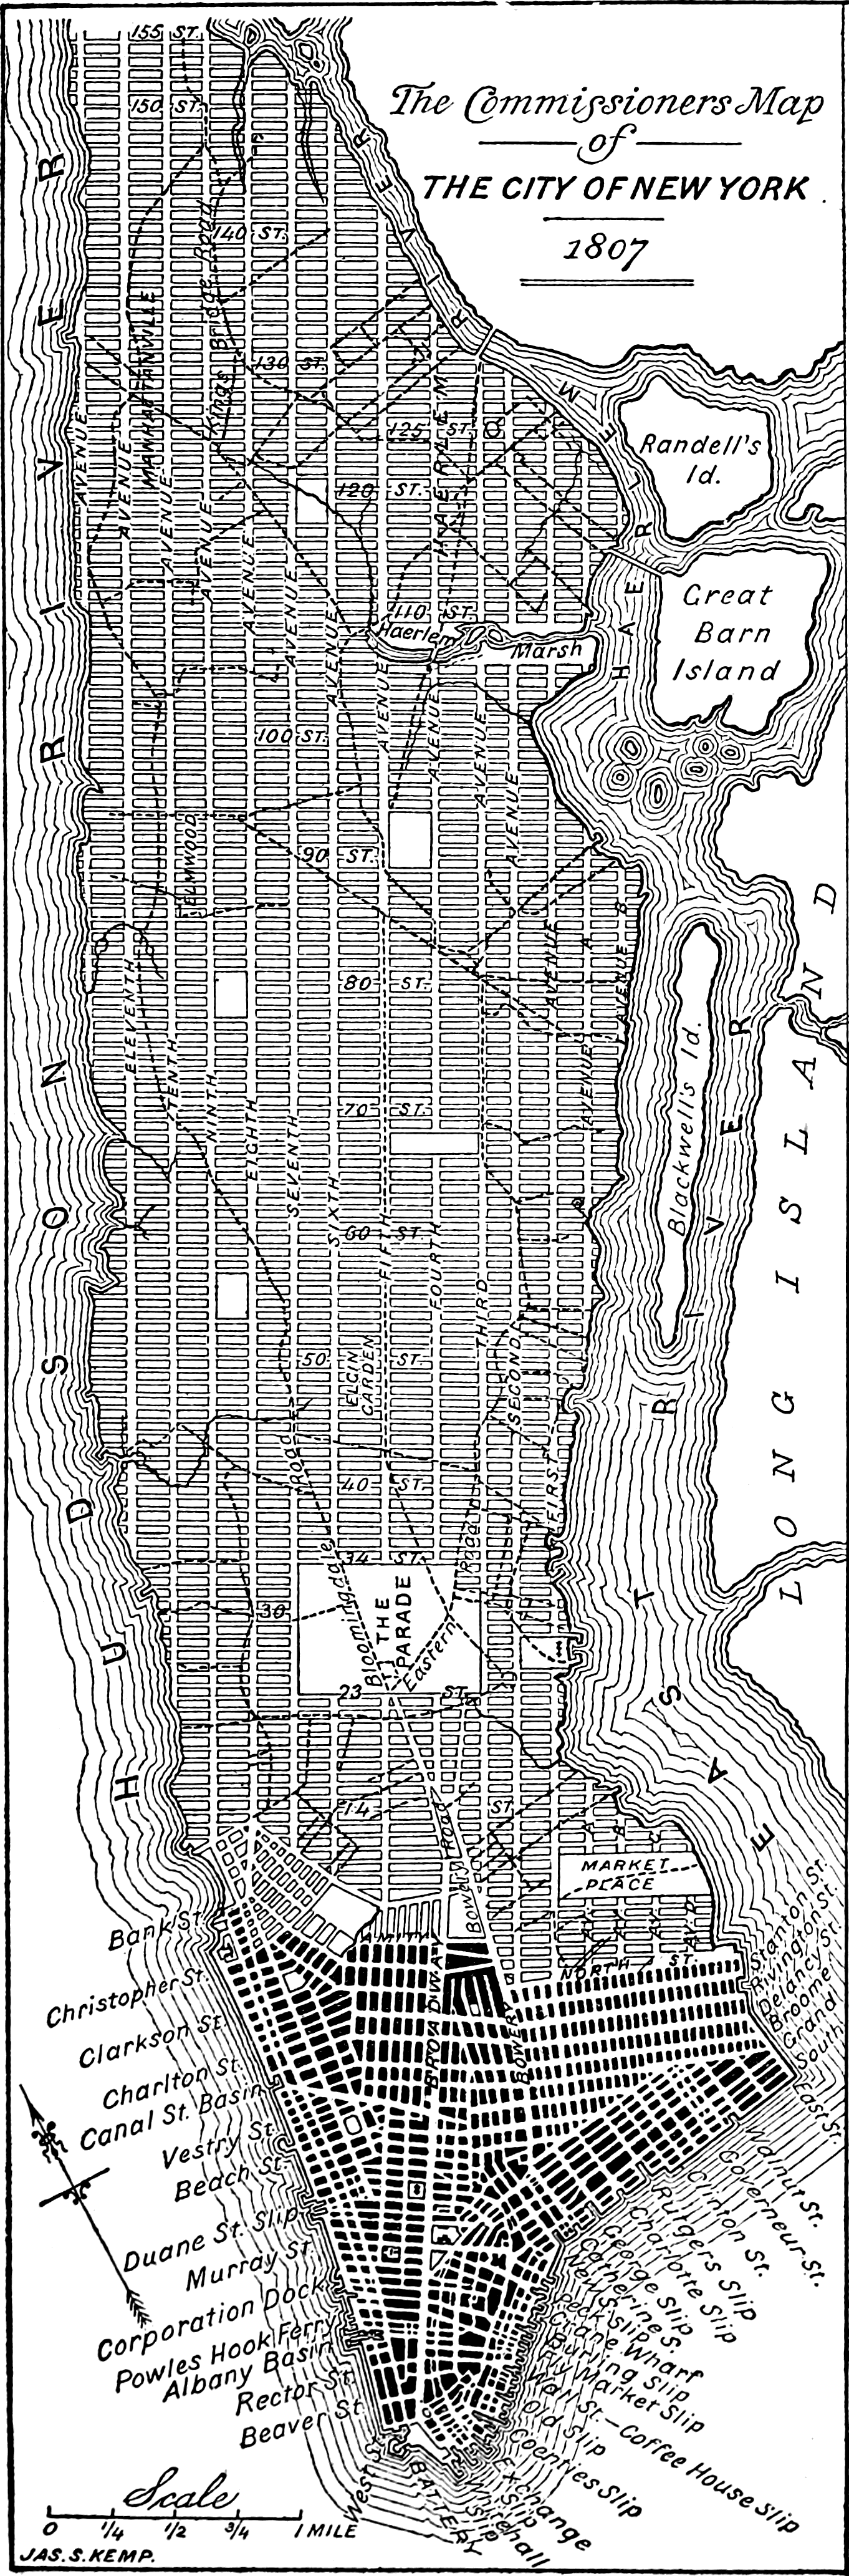 http://upload.wikimedia.org/wikipedia/commons/a/a6/NYC-GRID-1811.png